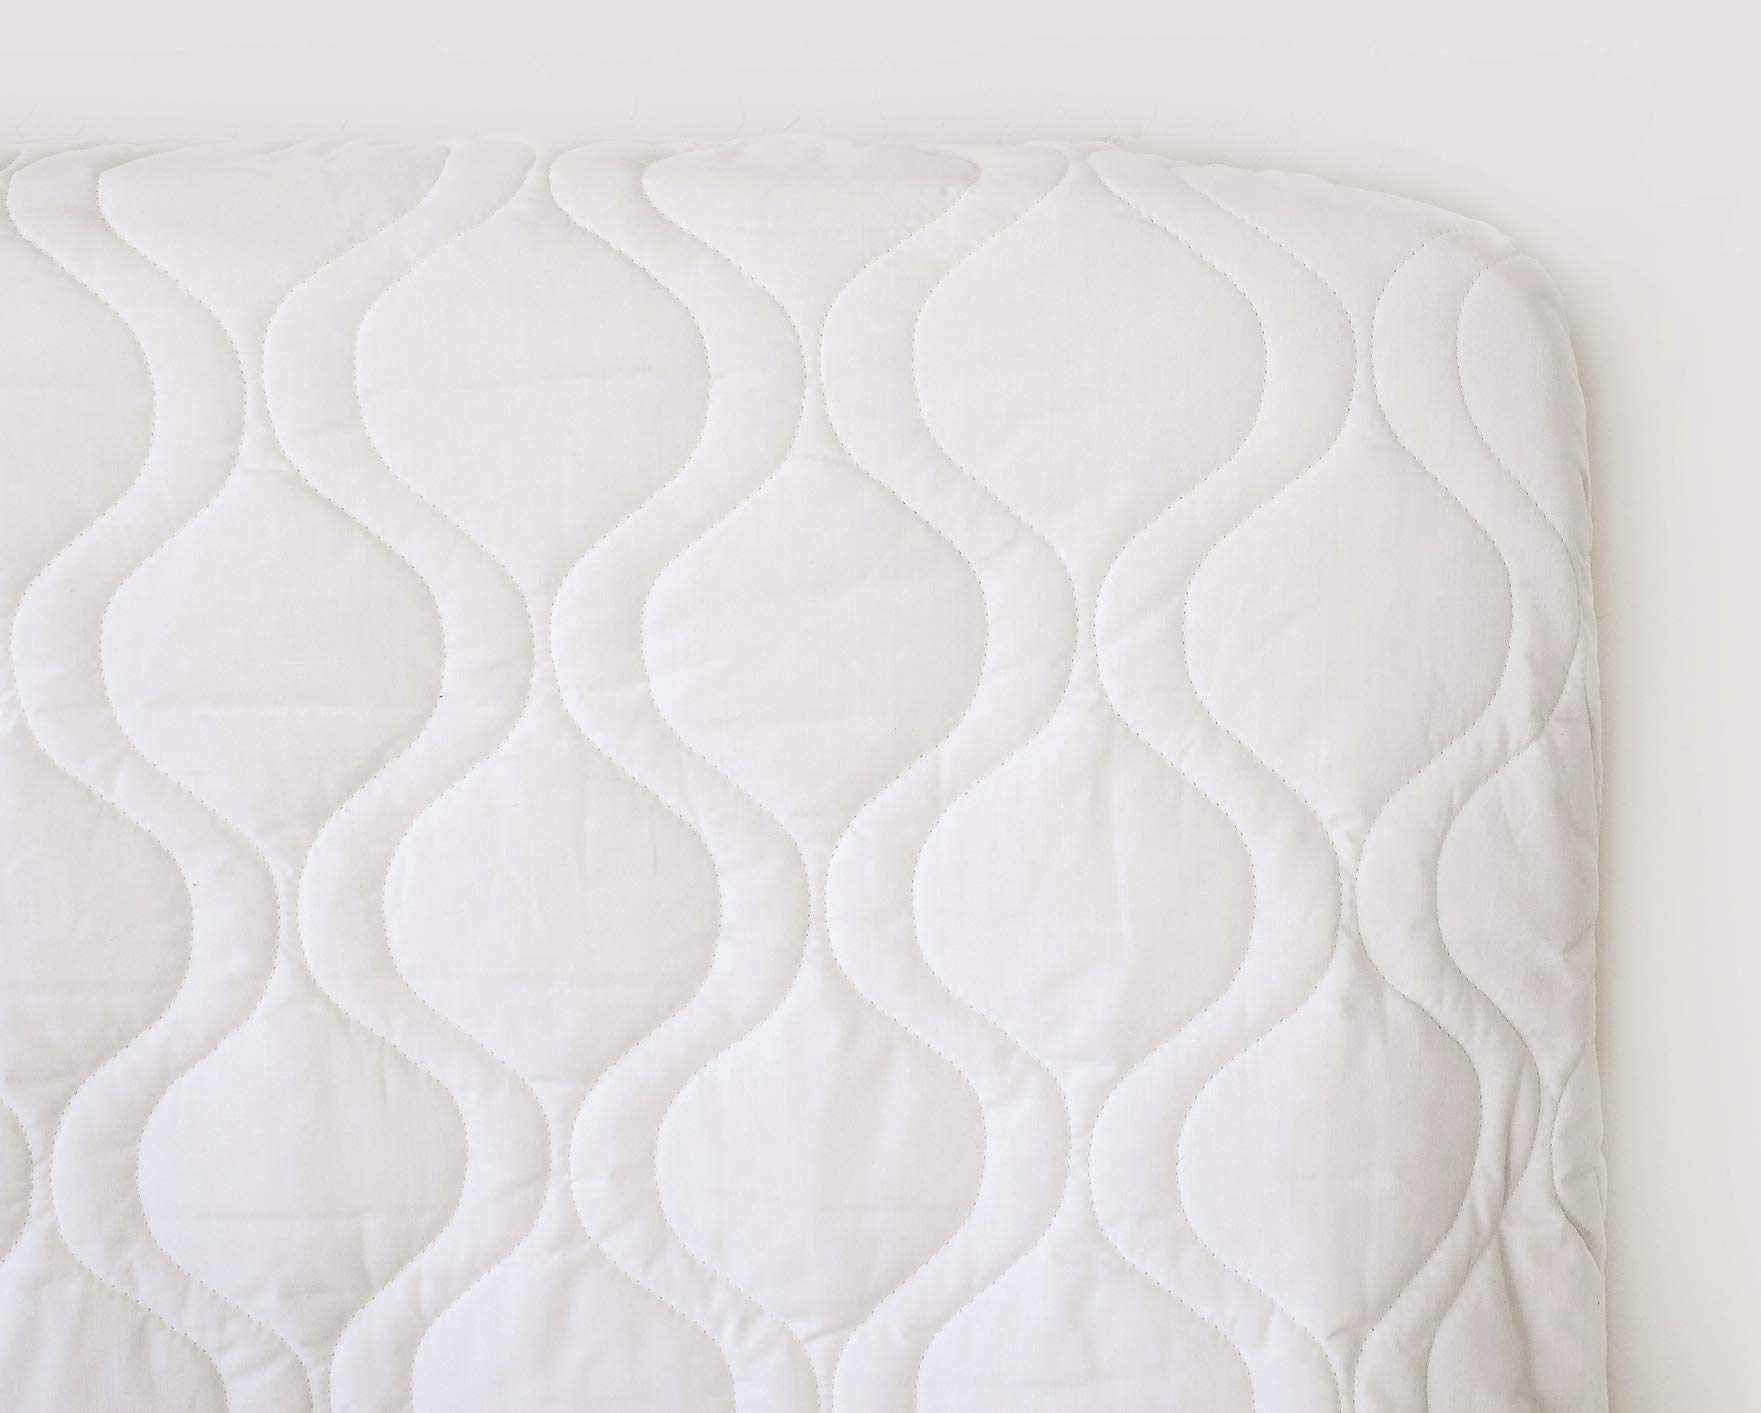 SheetWorld Quilted Fitted Crib Mattress Pad 28 x 52, Solid White, Made in USA by SHEETWORLD.COM